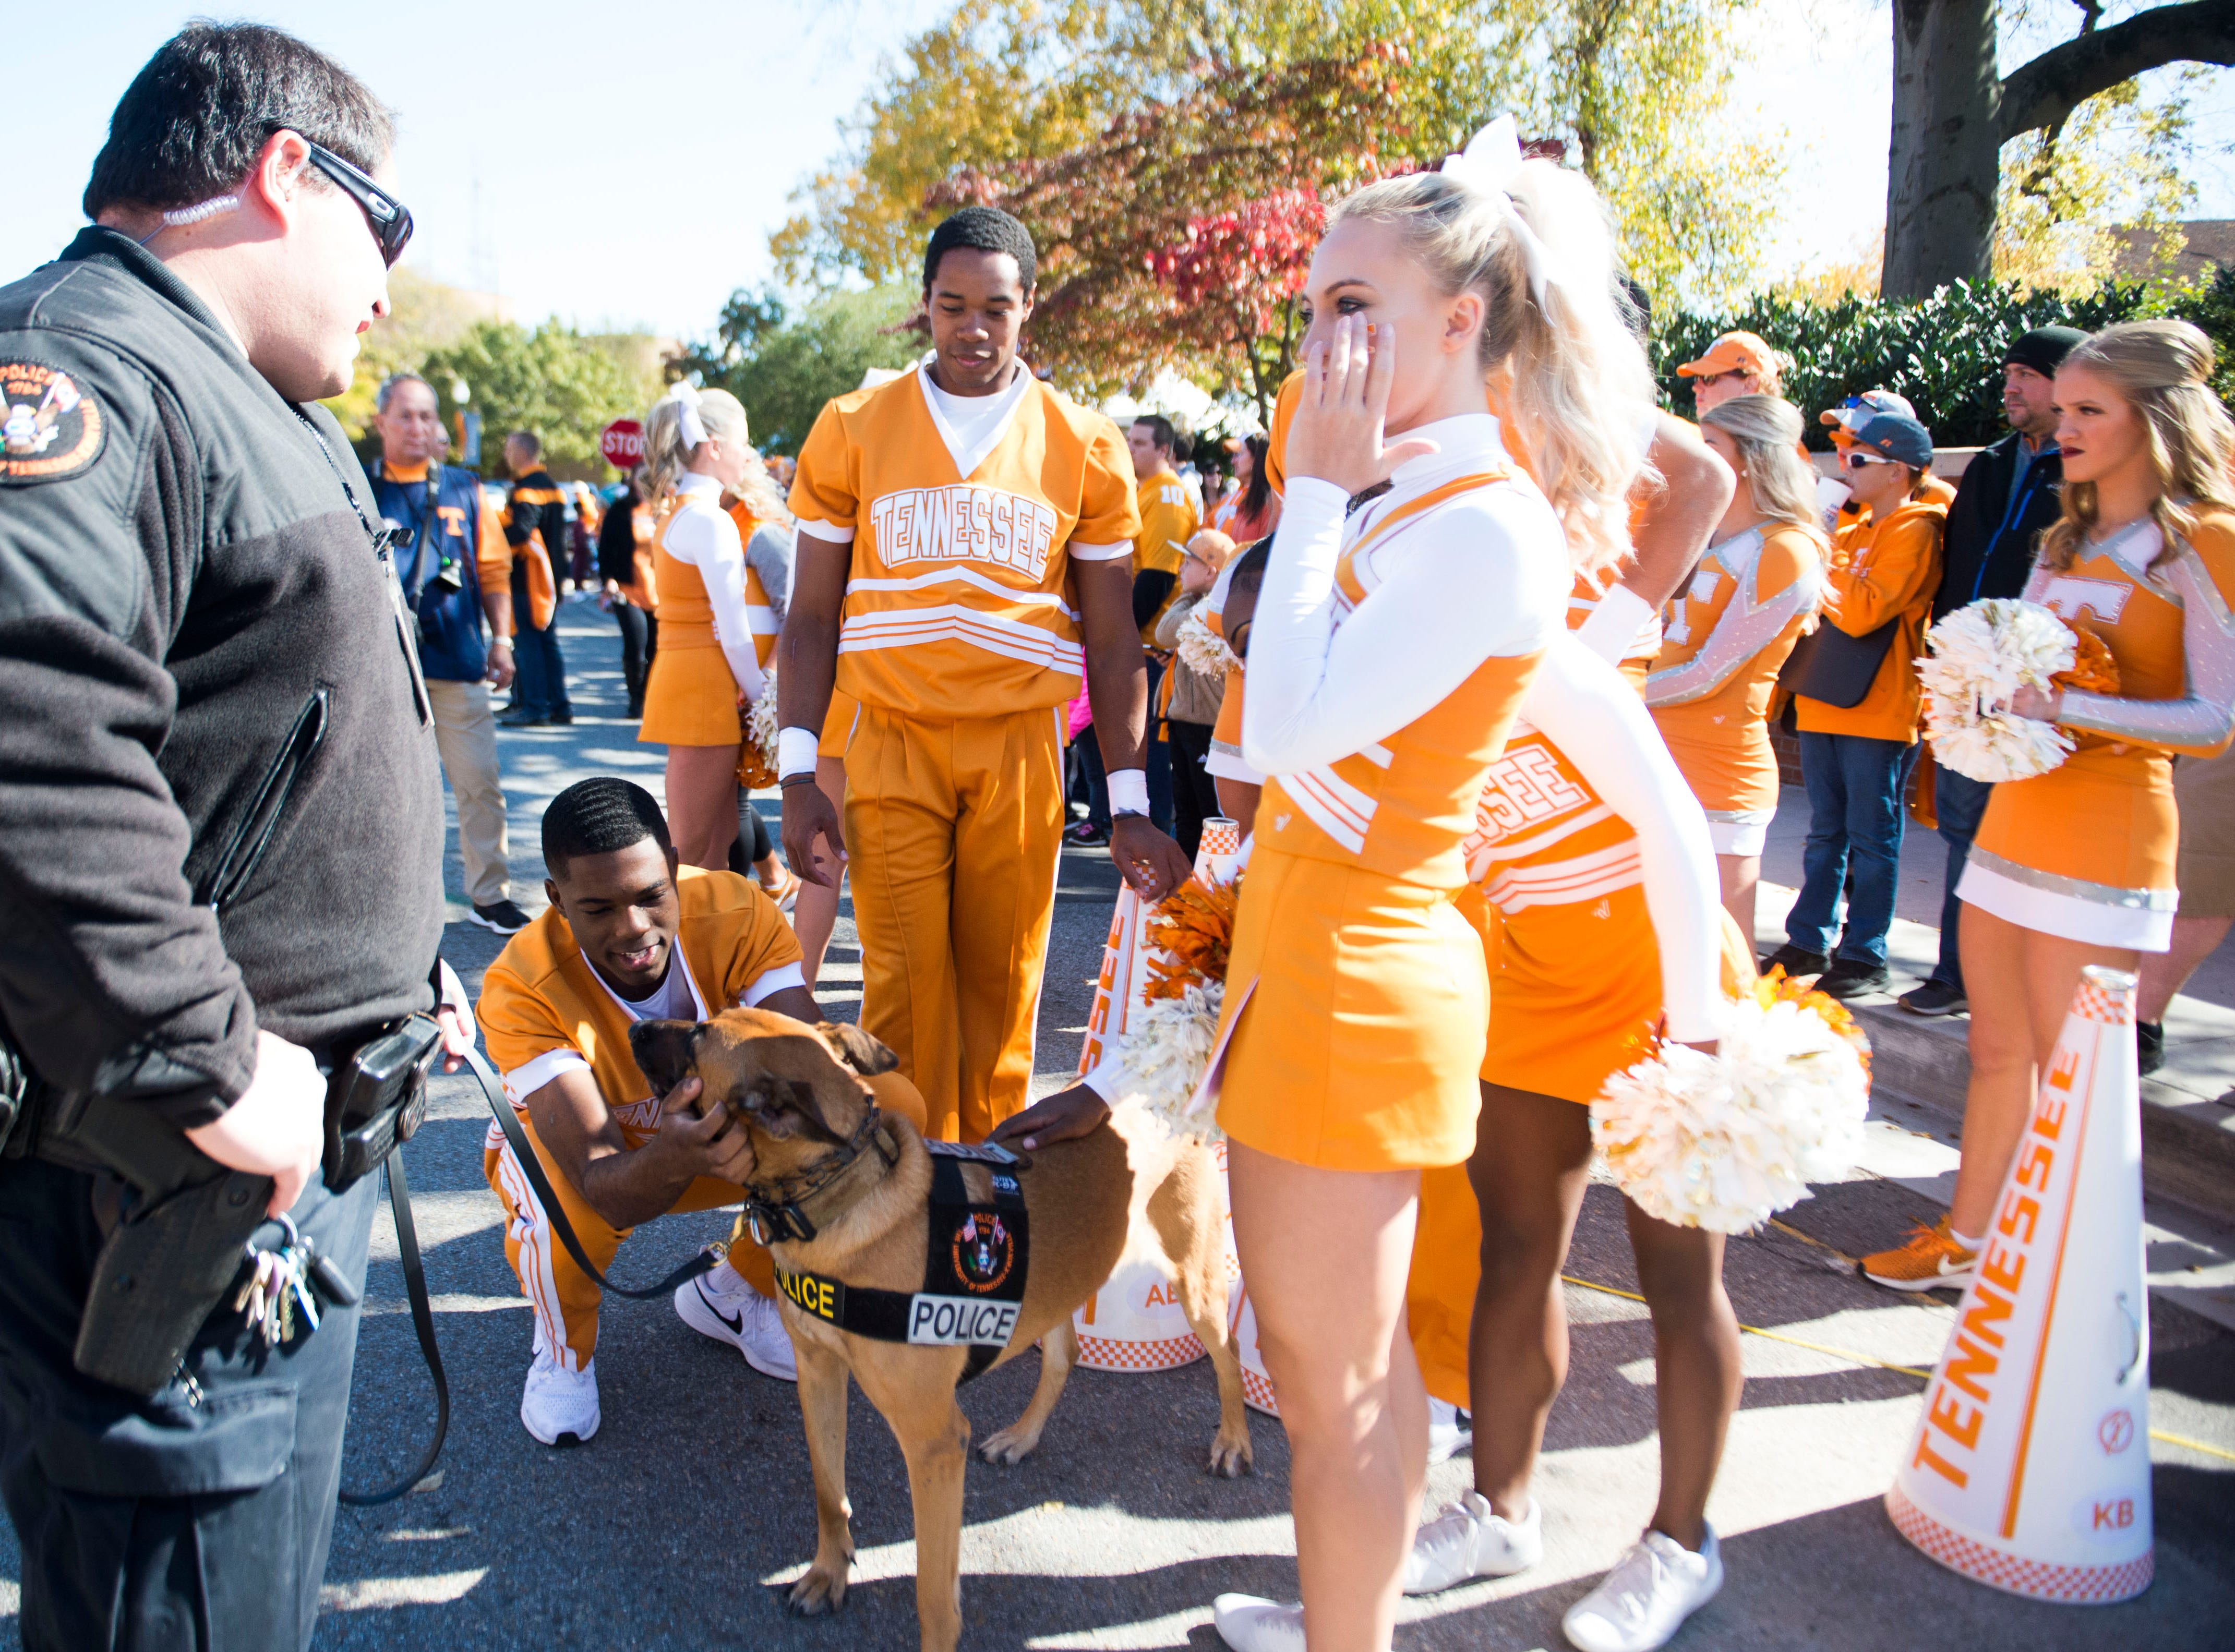 UT cheerleaders greet a police dog before the homecoming game between Tennessee and Charlotte outside of Neyland Stadium Saturday, Nov. 3, 2018.